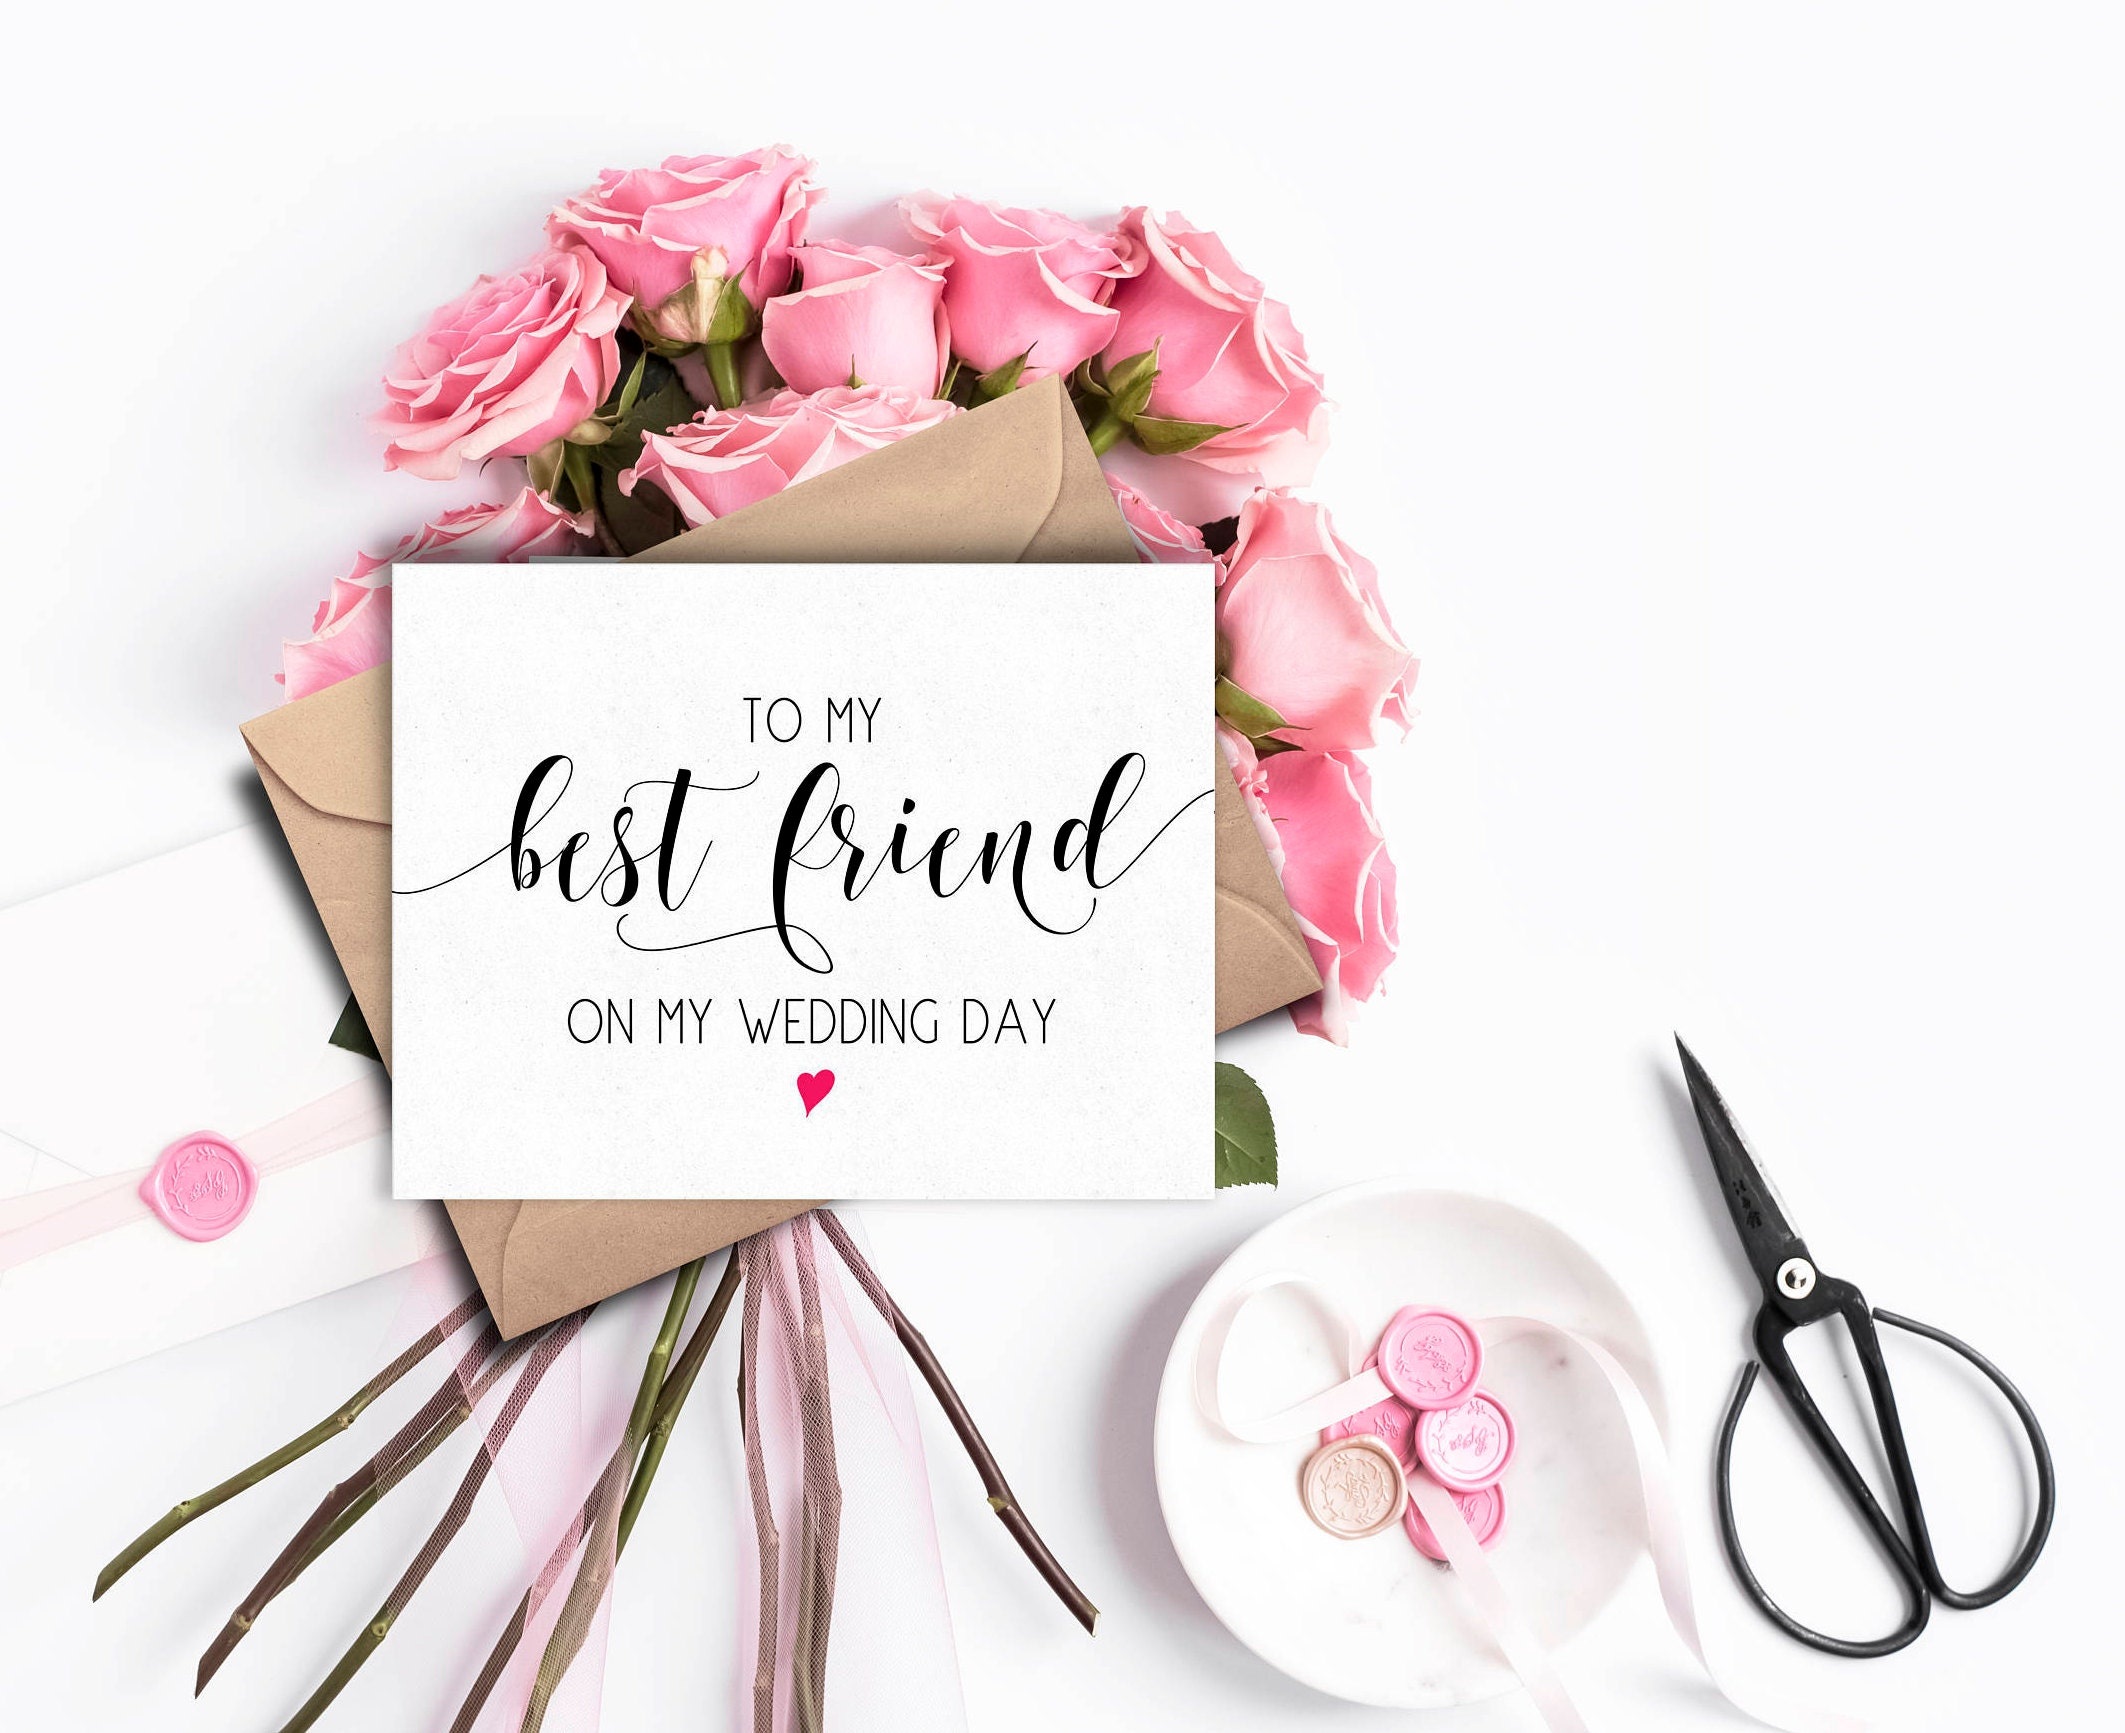 Best Friend Wedding Card For Day Of